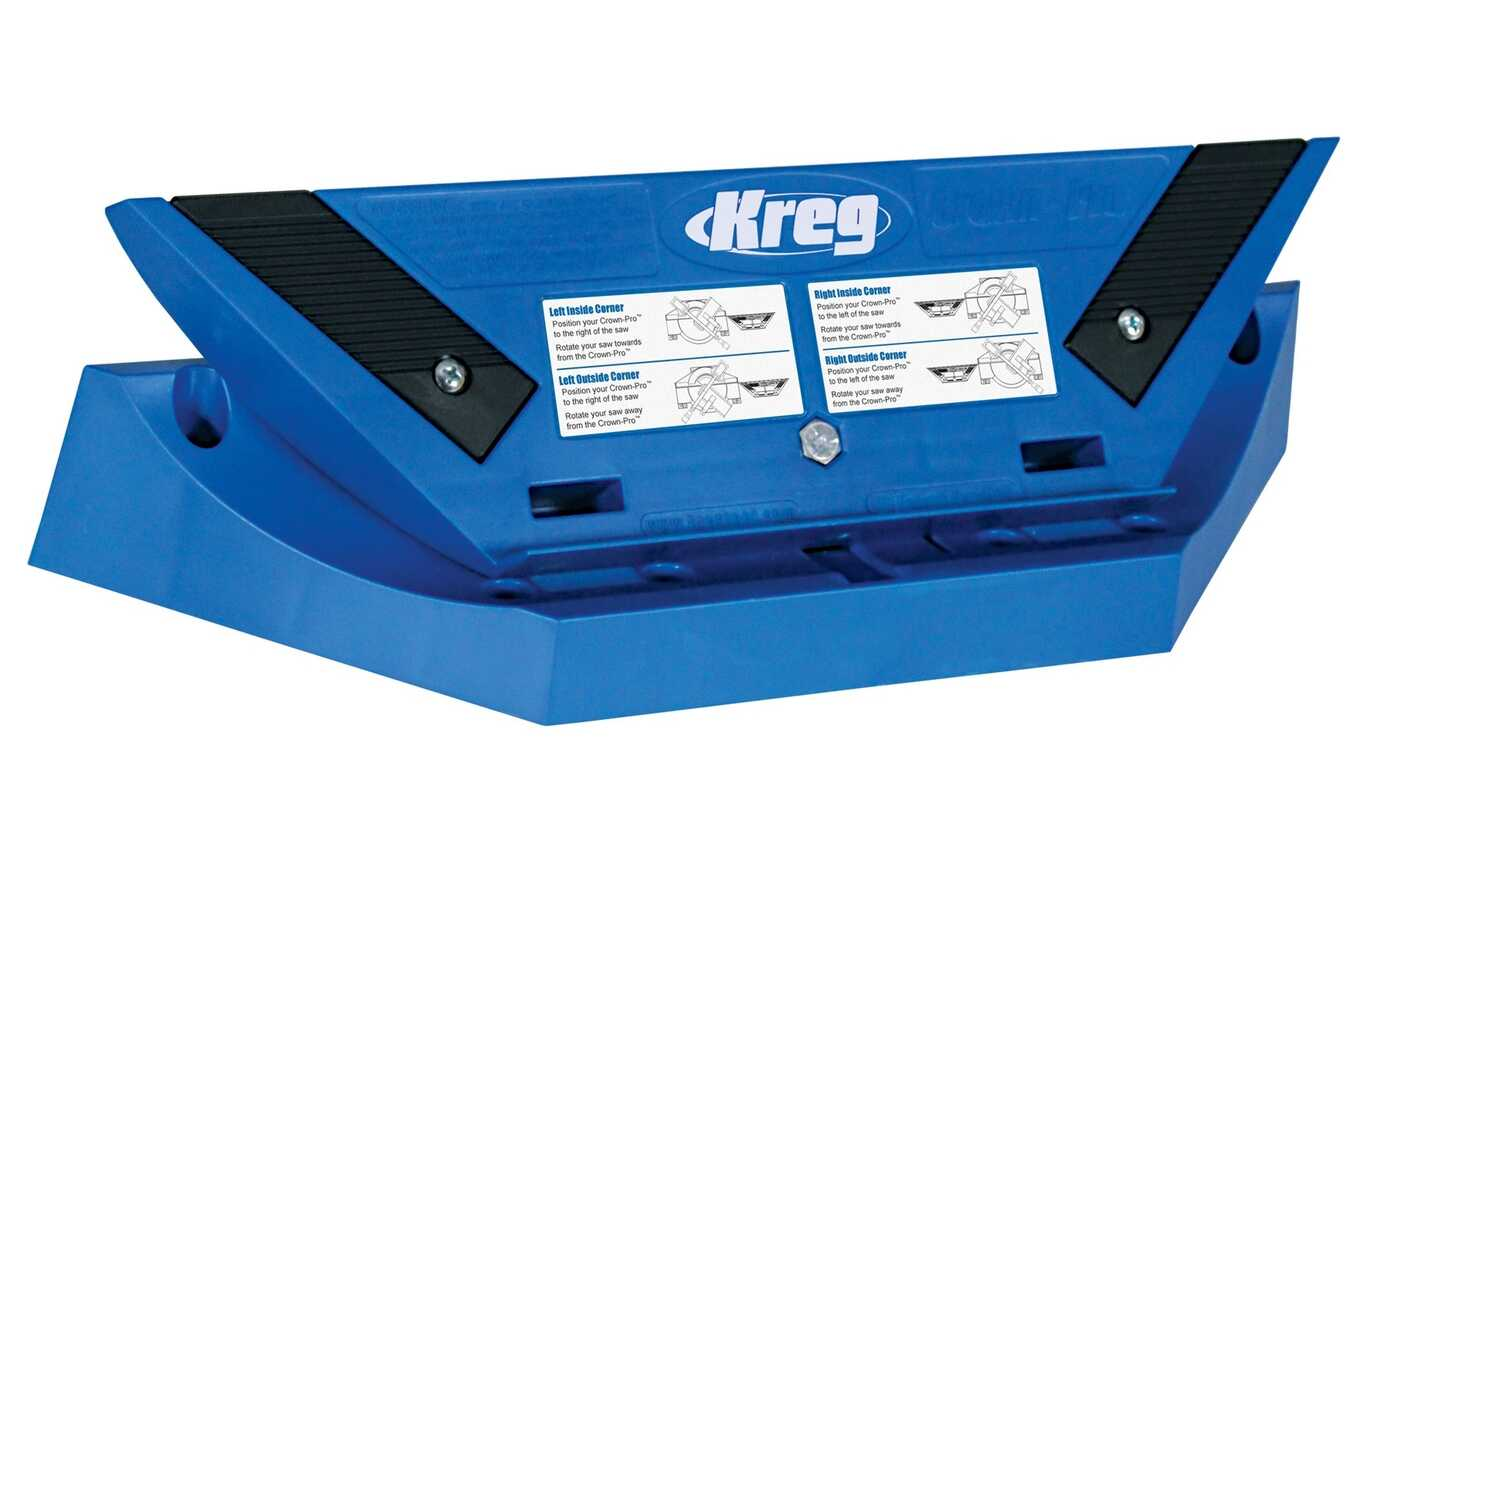 Kreg Tool  Crown-Pro  Plastic  Jig with Angle Finder  1/2 in. to 5-1/2 in. Blue  1 pc.